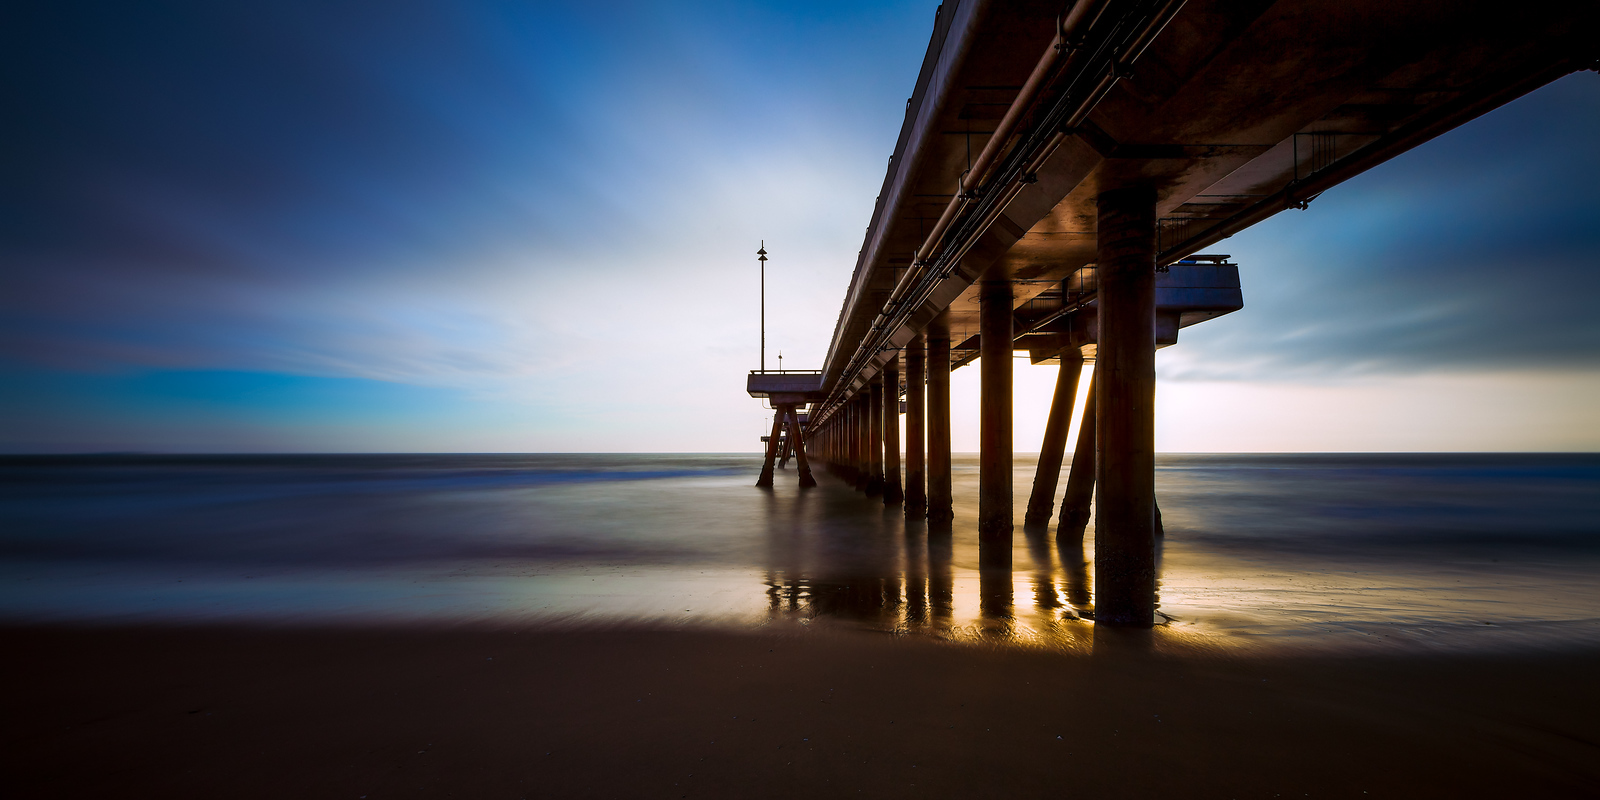 Beneath The Venice Pier